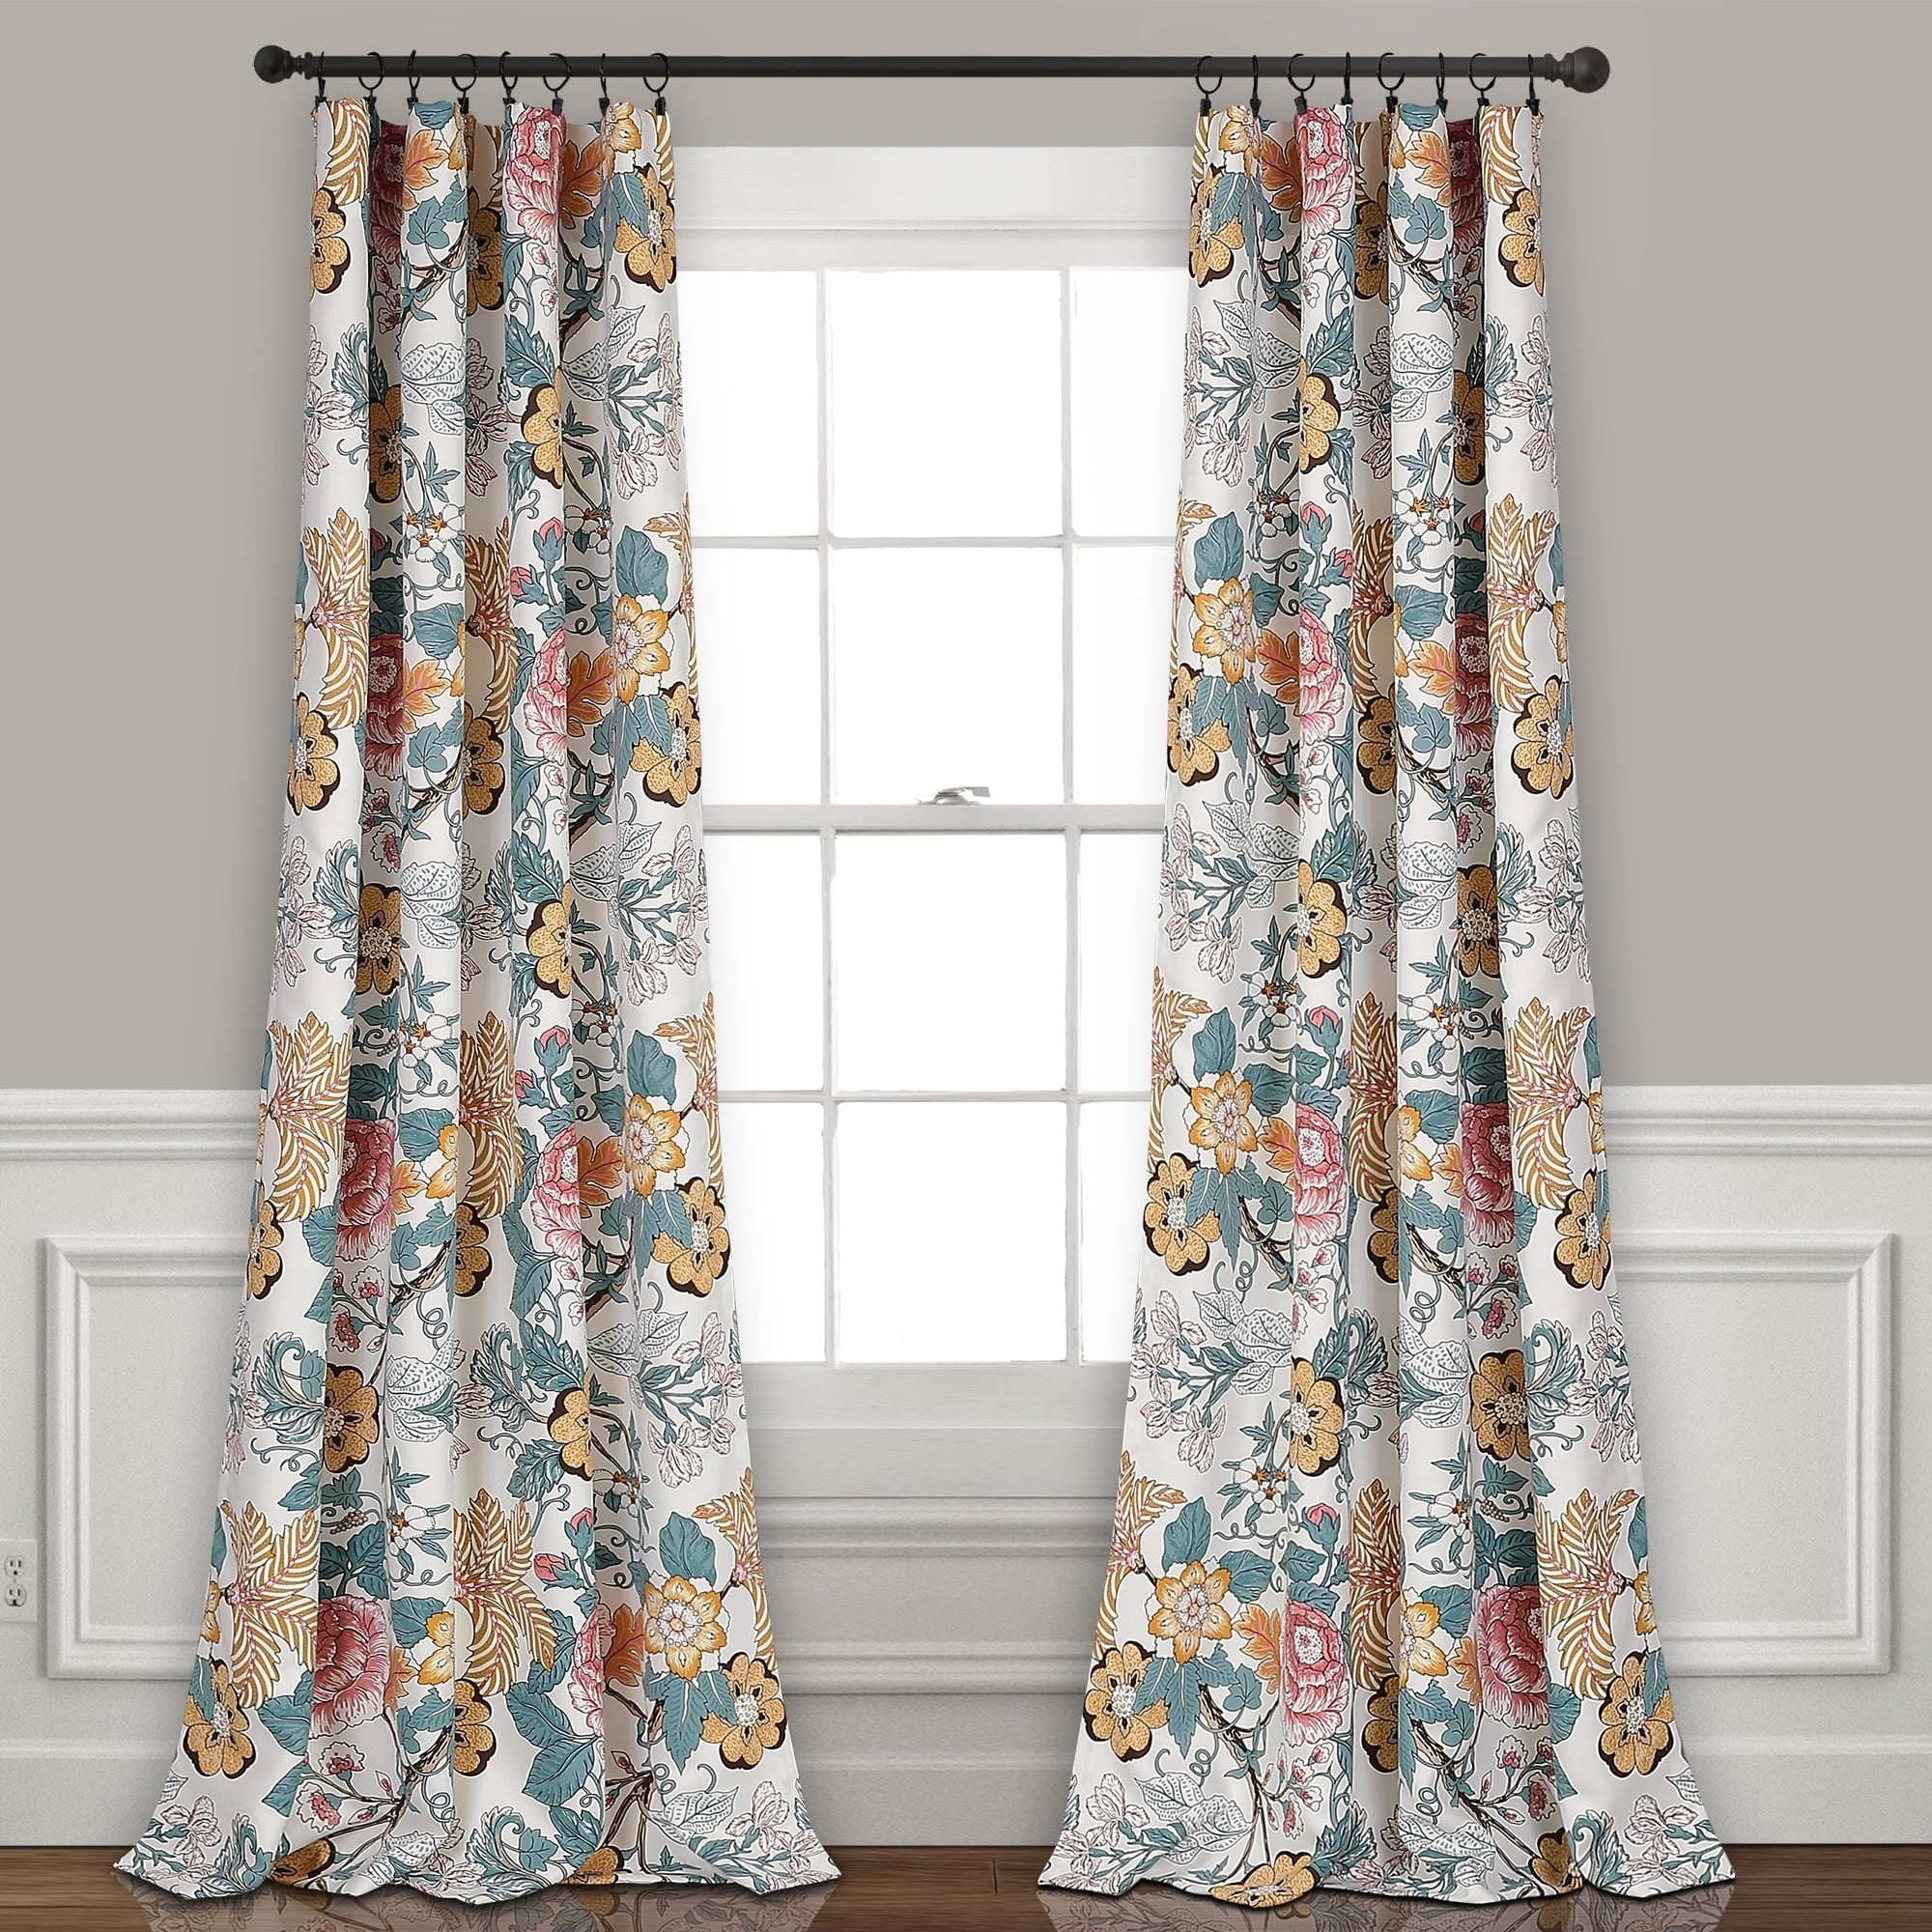 The Curated Nomad Chorro Room Darkening Curtain Panel Pair With Dolores Room Darkening Floral Curtain Panel Pairs (View 14 of 20)